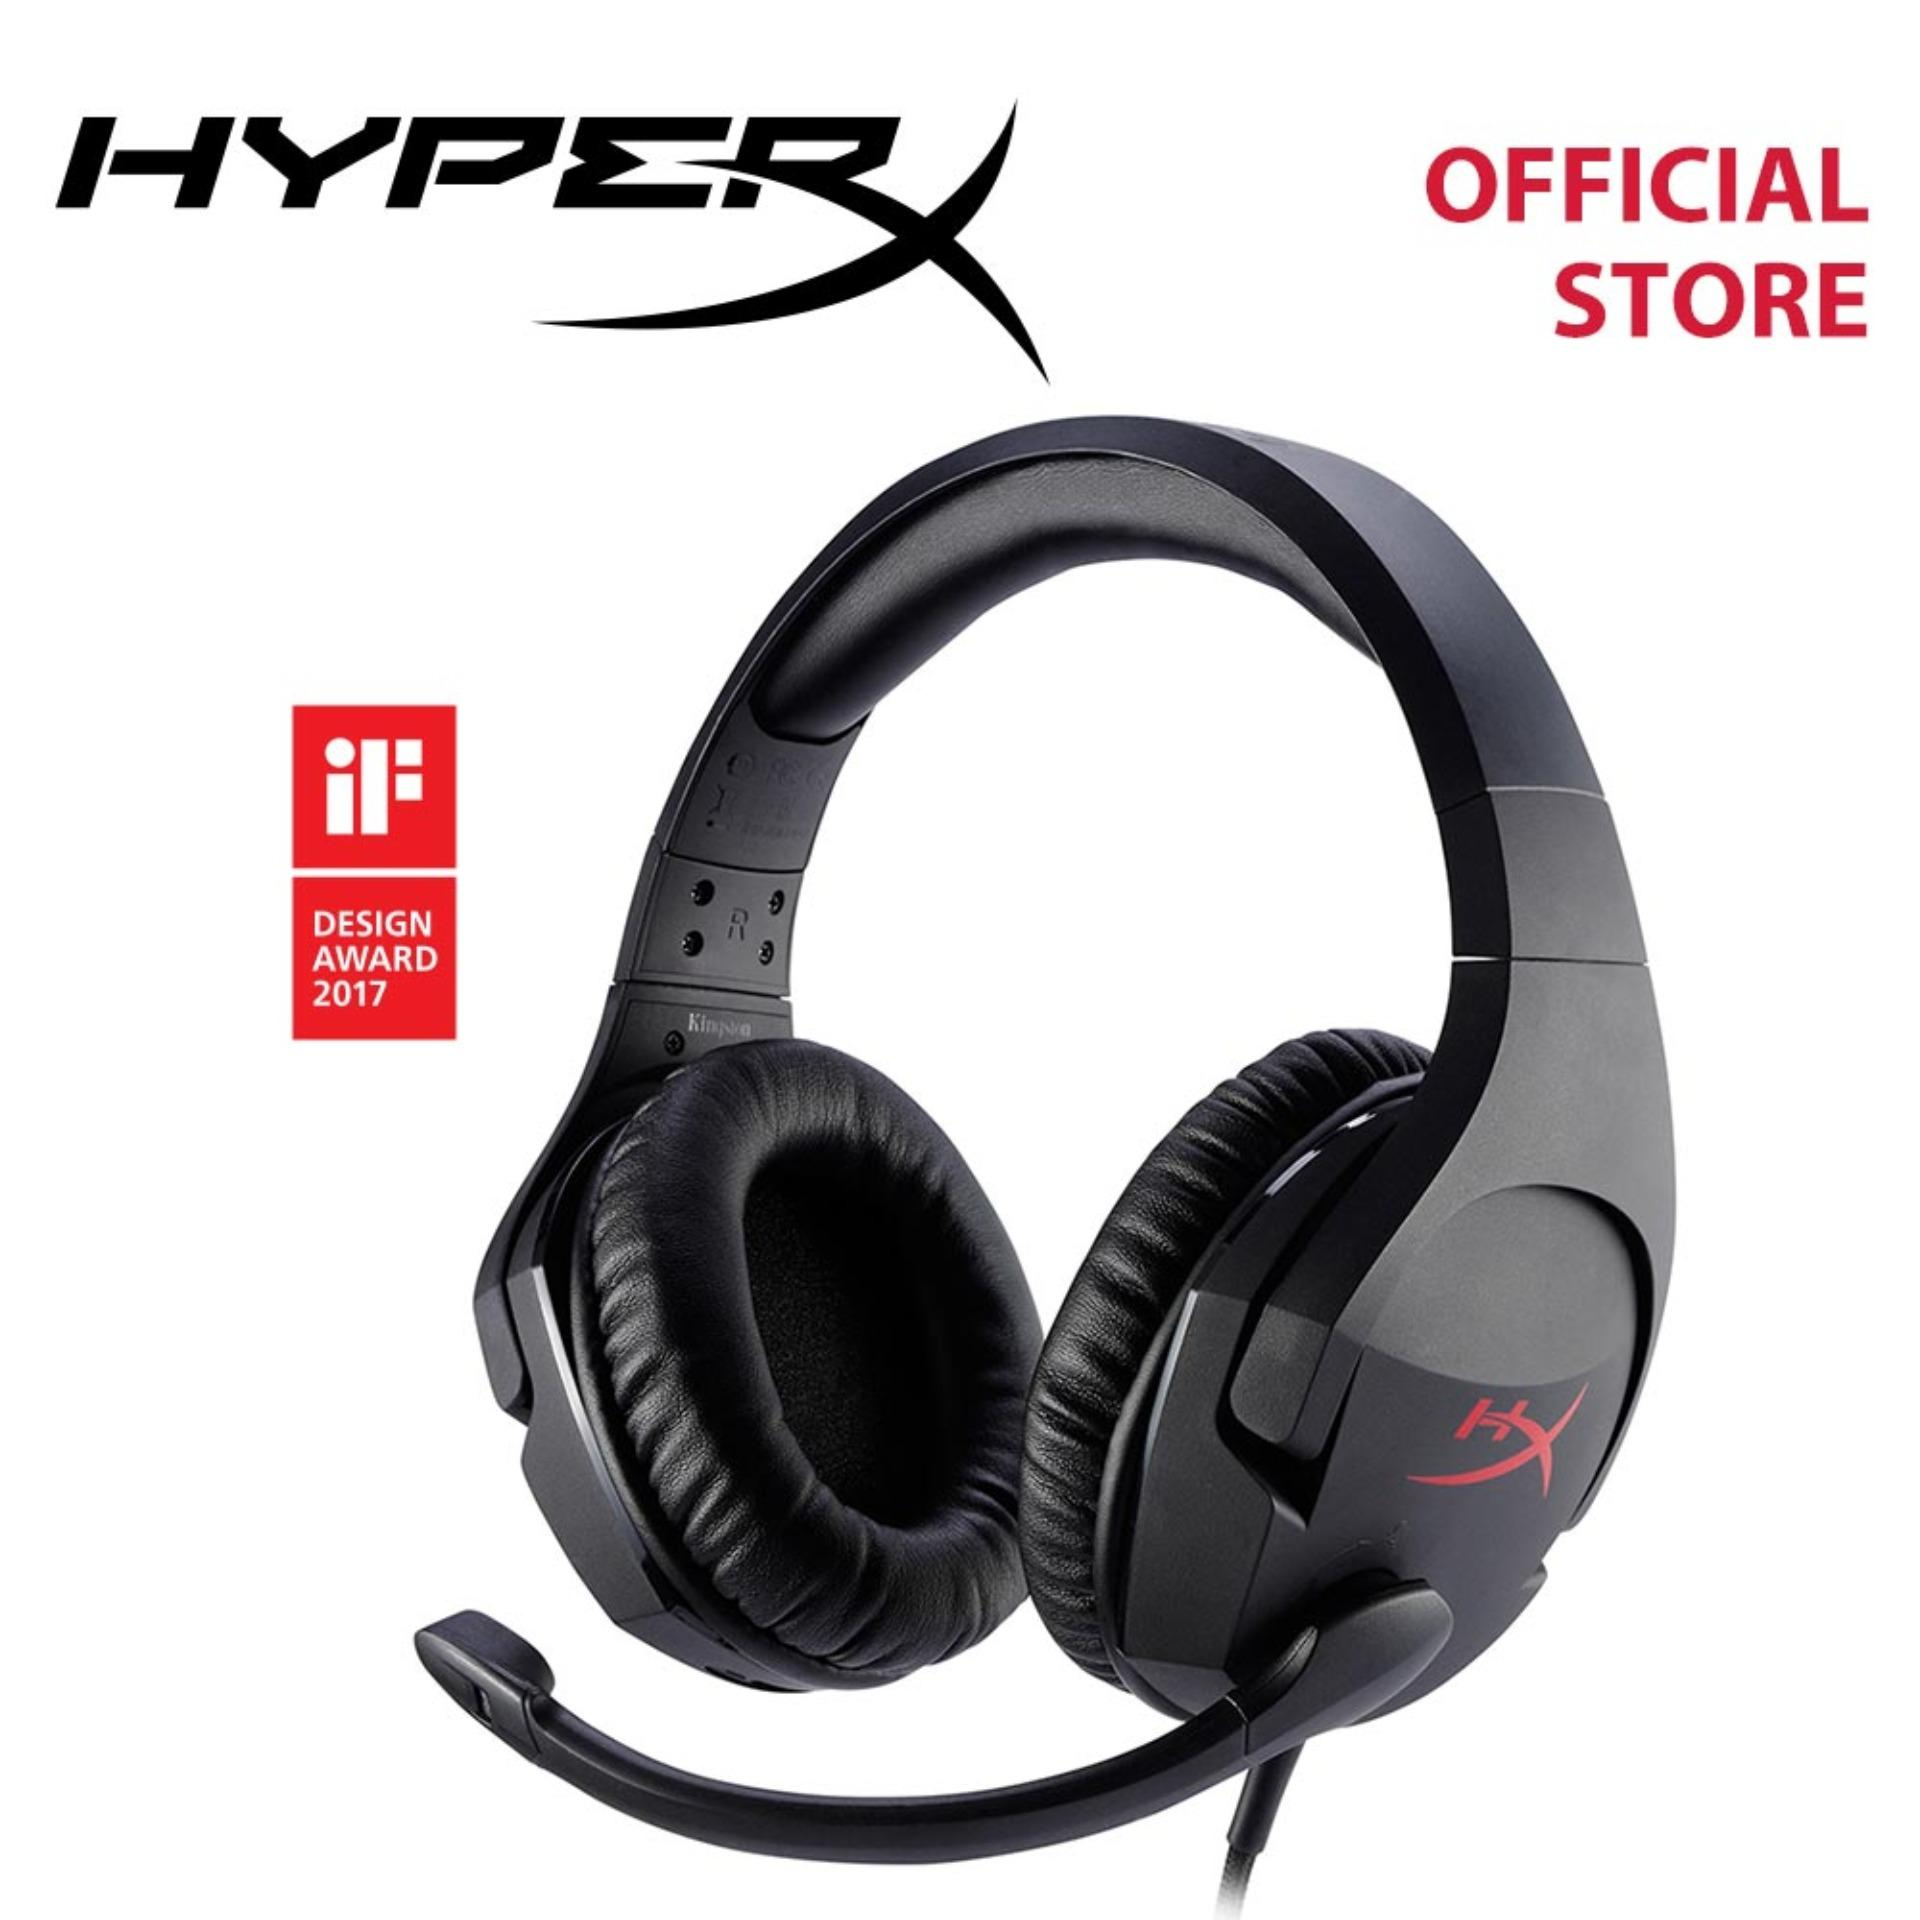 HyperX Cloud Stinger Gaming Headset (Black) - For PC and Consoles